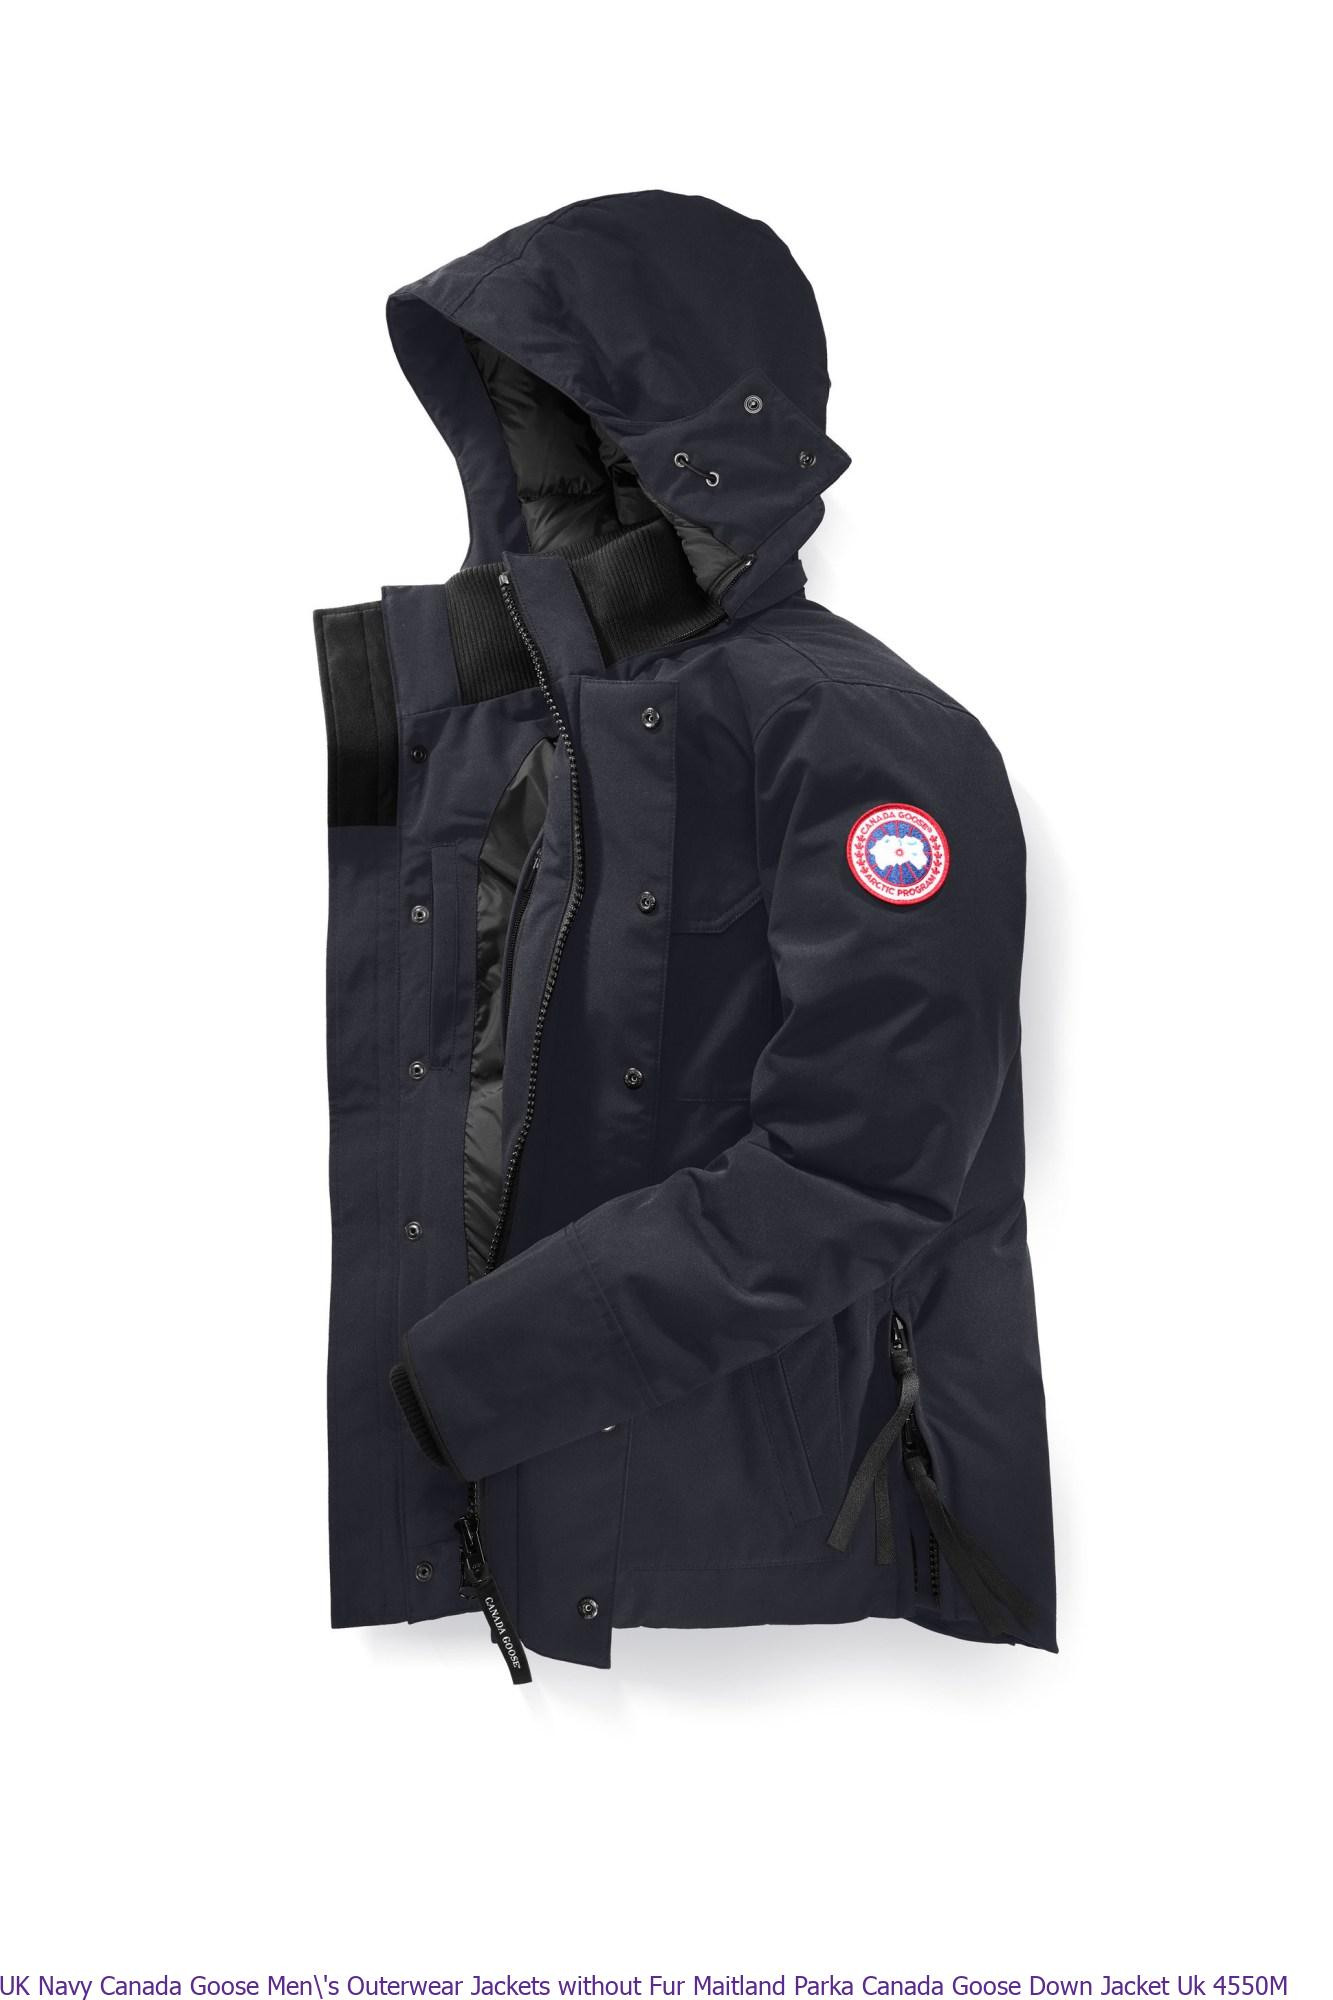 cd9a6f99639 UK Navy Canada Goose Men\'s Outerwear Jackets without Fur Maitland Parka  Canada Goose Down Jacket Uk 4550M